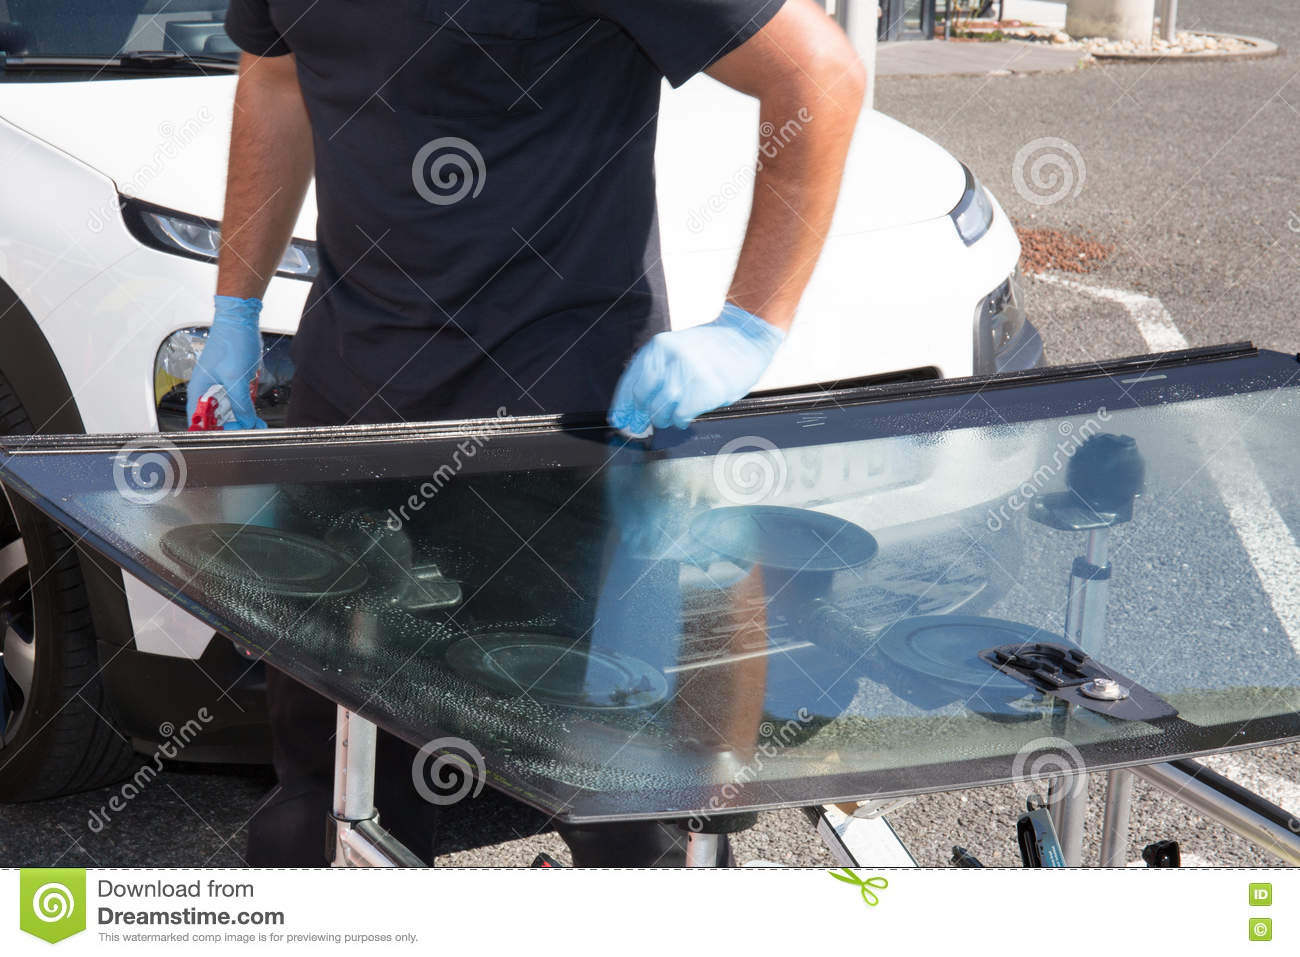 Glazier Removing Windshield Or Windscreen On A Car Stock Image ...